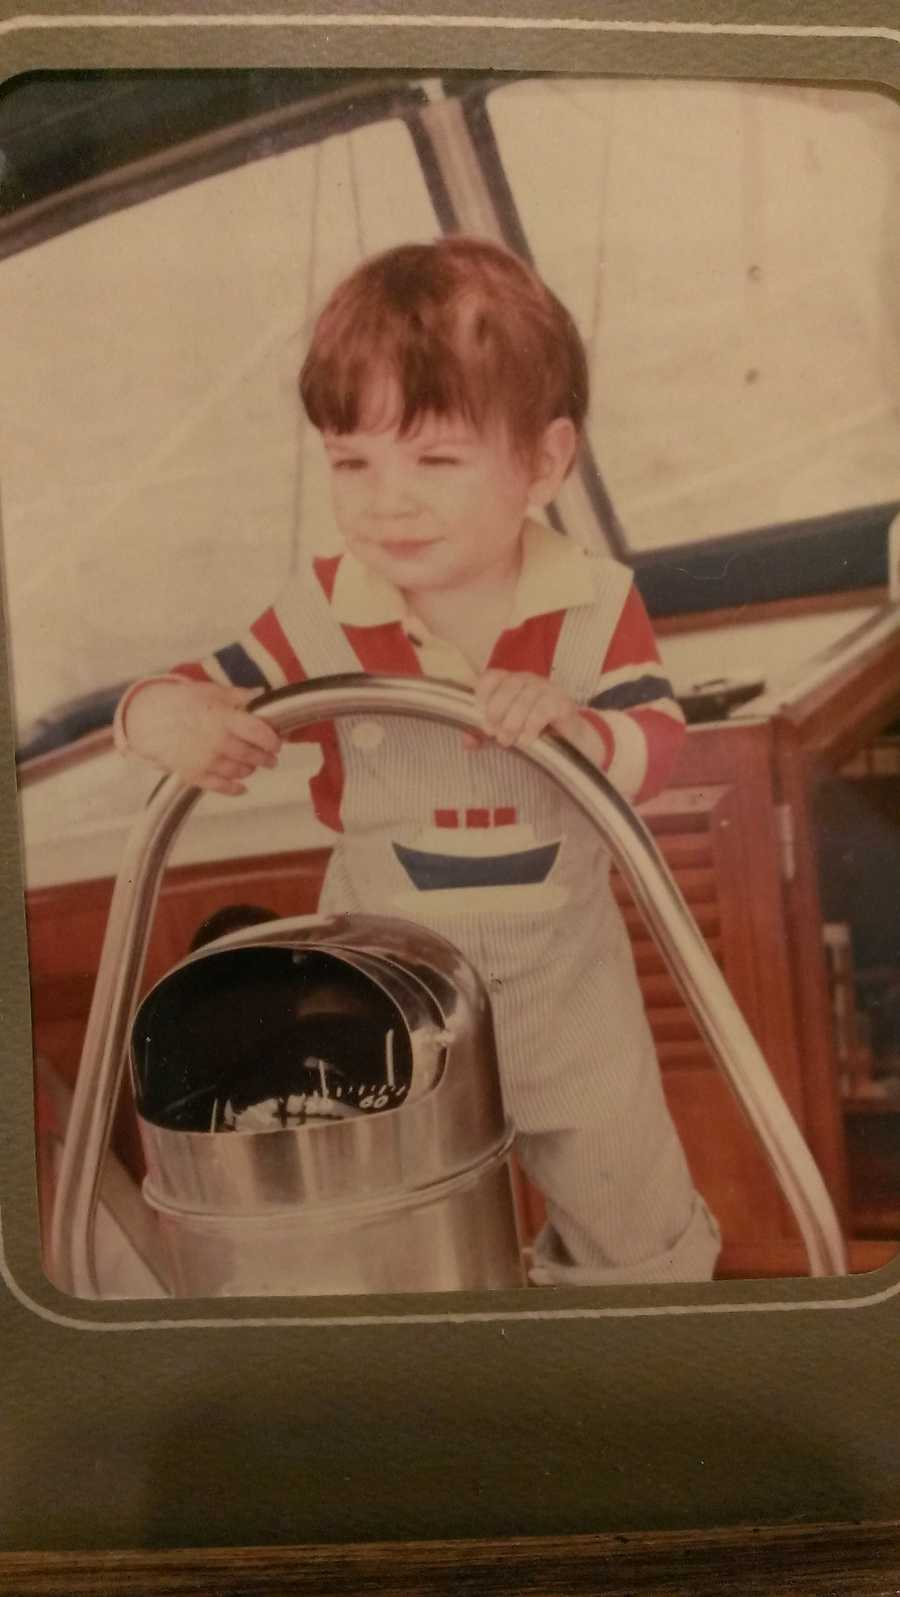 David got his sea legs at an early age. His parents maintain he was sailing by the time he was a month old. It's a sport and an art he loves to this day.